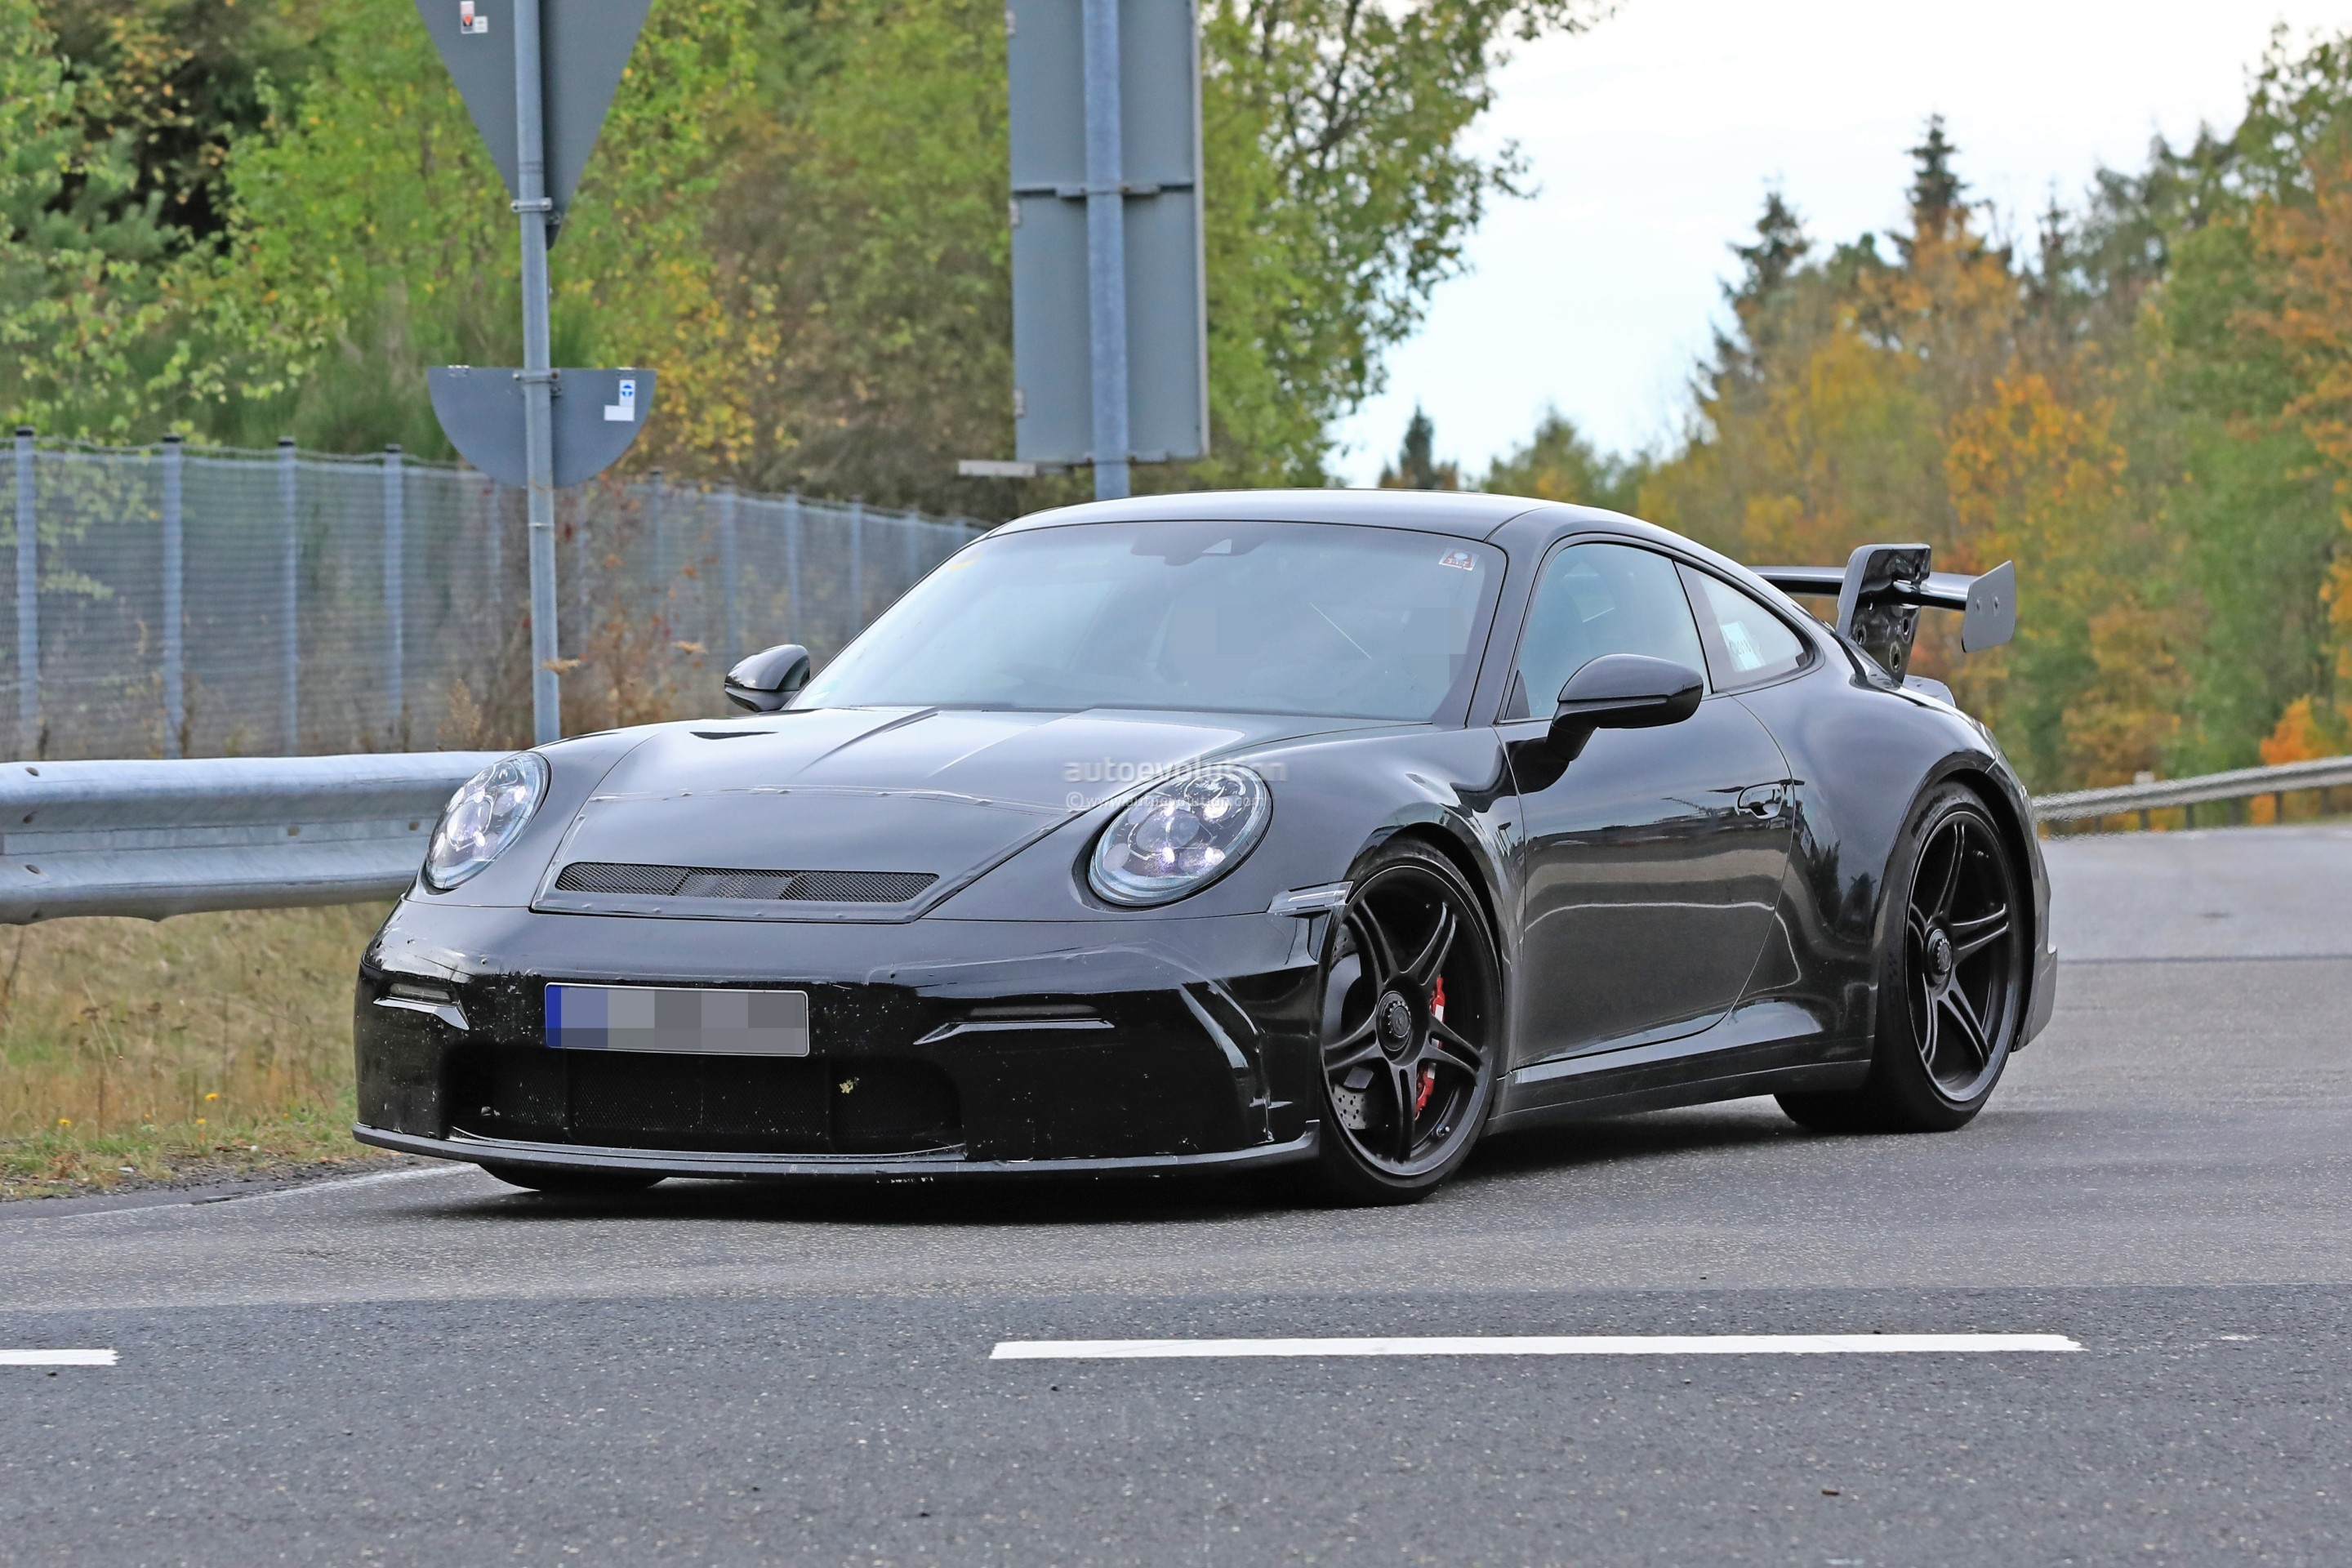 new-2020-p​orsche-911​-gt3-proto​type-shows​-productio​n-design_5